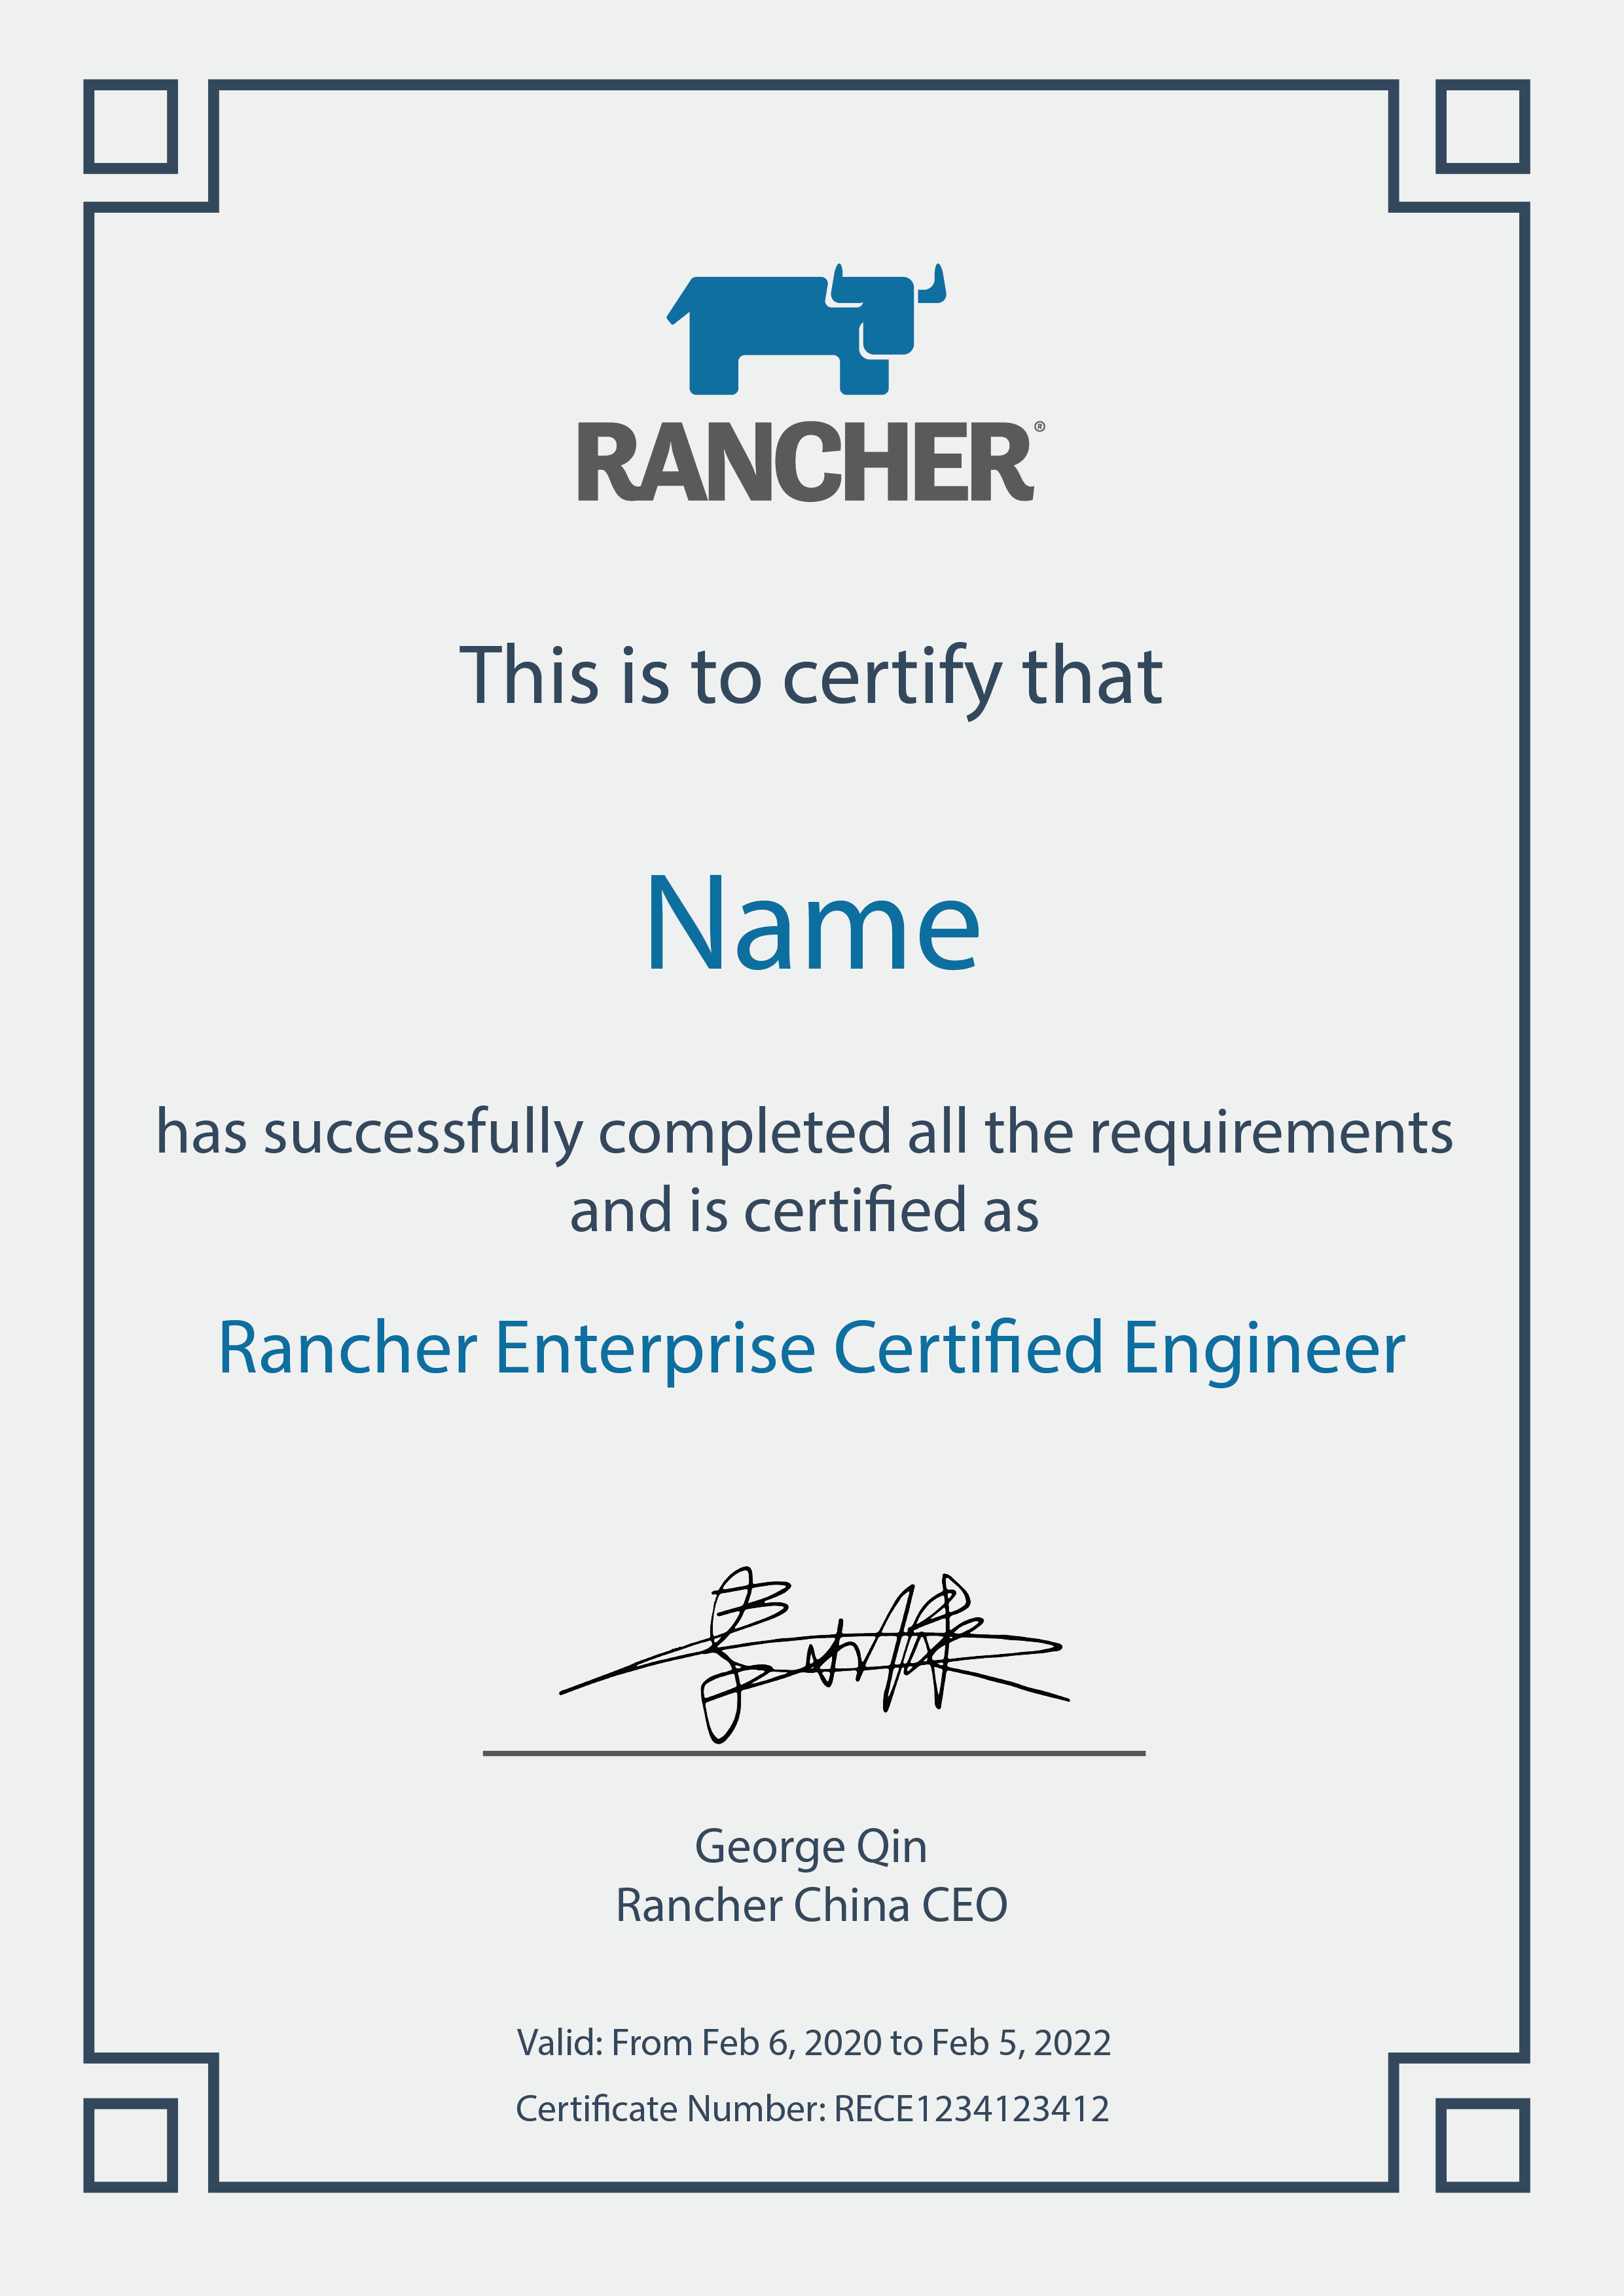 America's #1 Live TV Streaming Service, Sling TV, Selects Rancher for a Push Notification Application Required to Run ~ 50K Transactions per Second